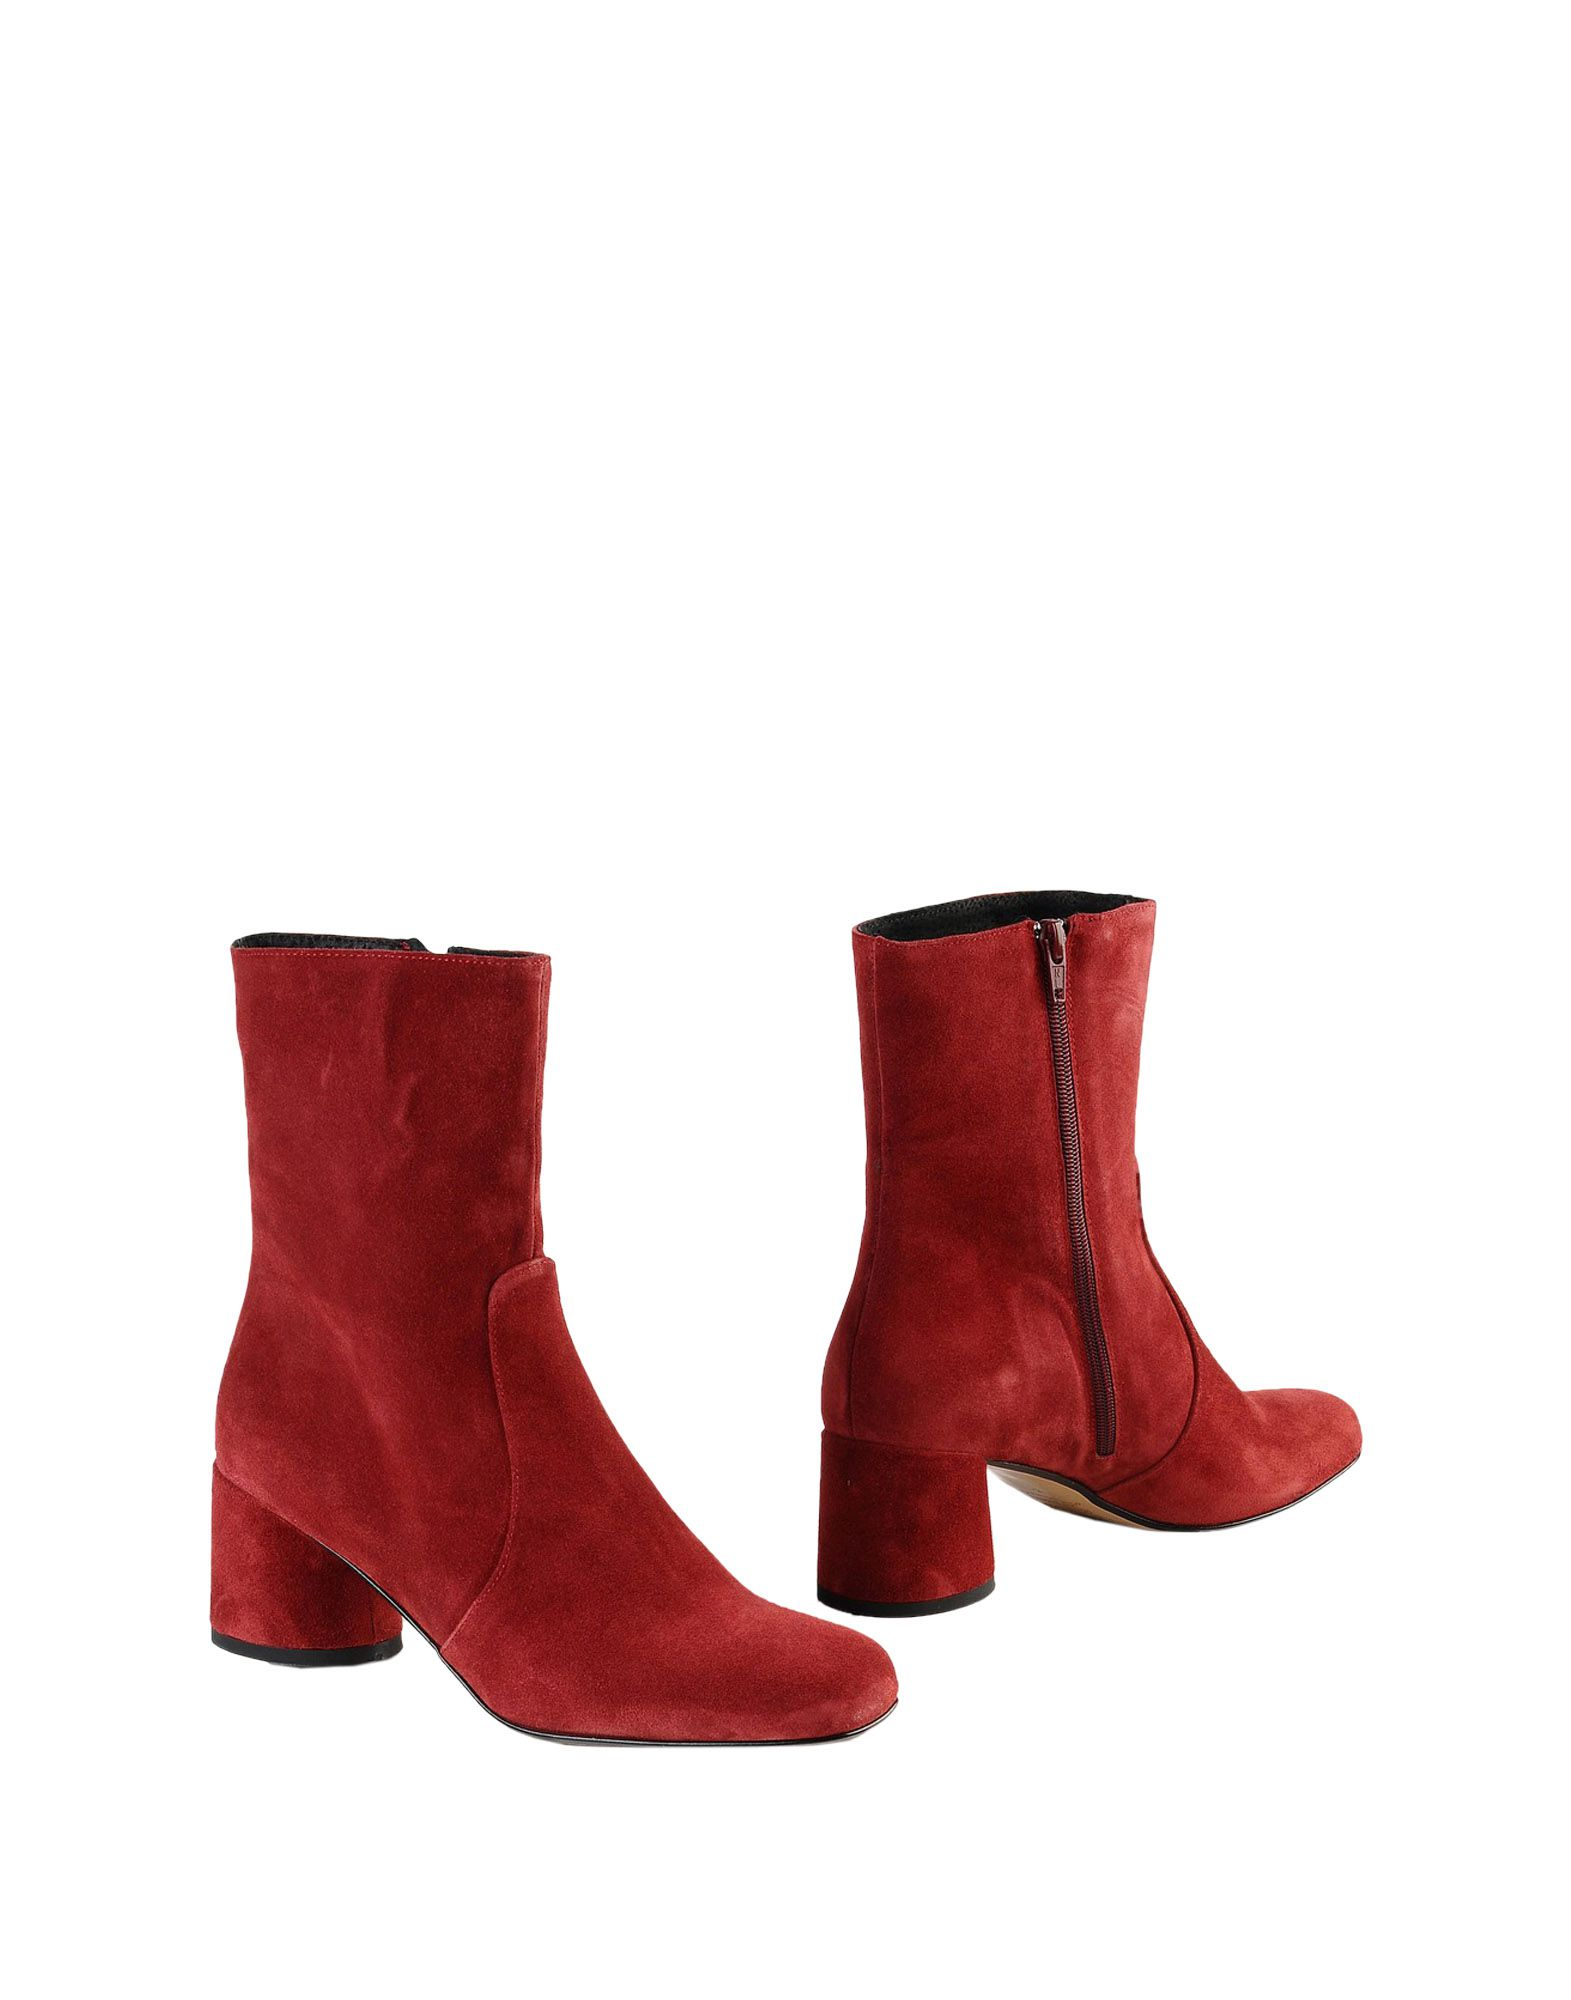 George J. Love George Ankle Boot - Women George Love J. Love Ankle Boots online on  Australia - 11537873KP 1fb393